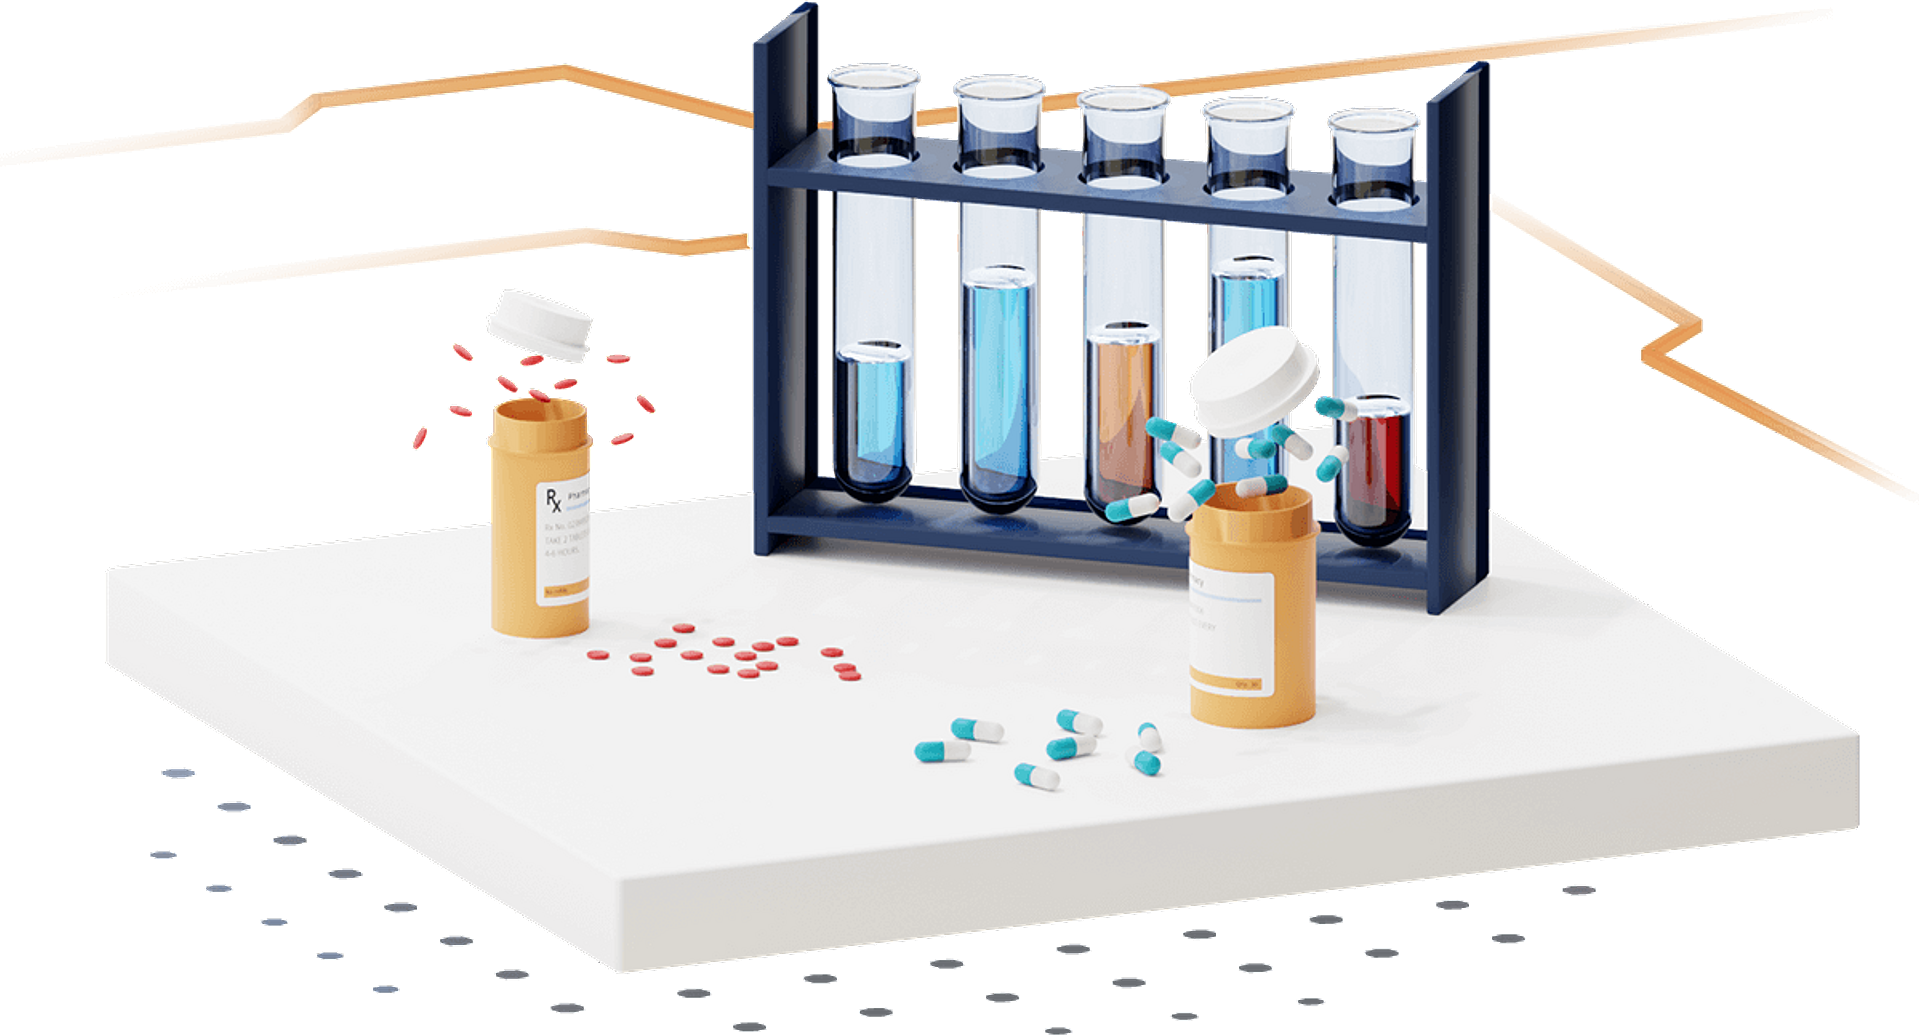 Pharma supply chain planning solutions from Vanguard's end-to-end predictive platform.